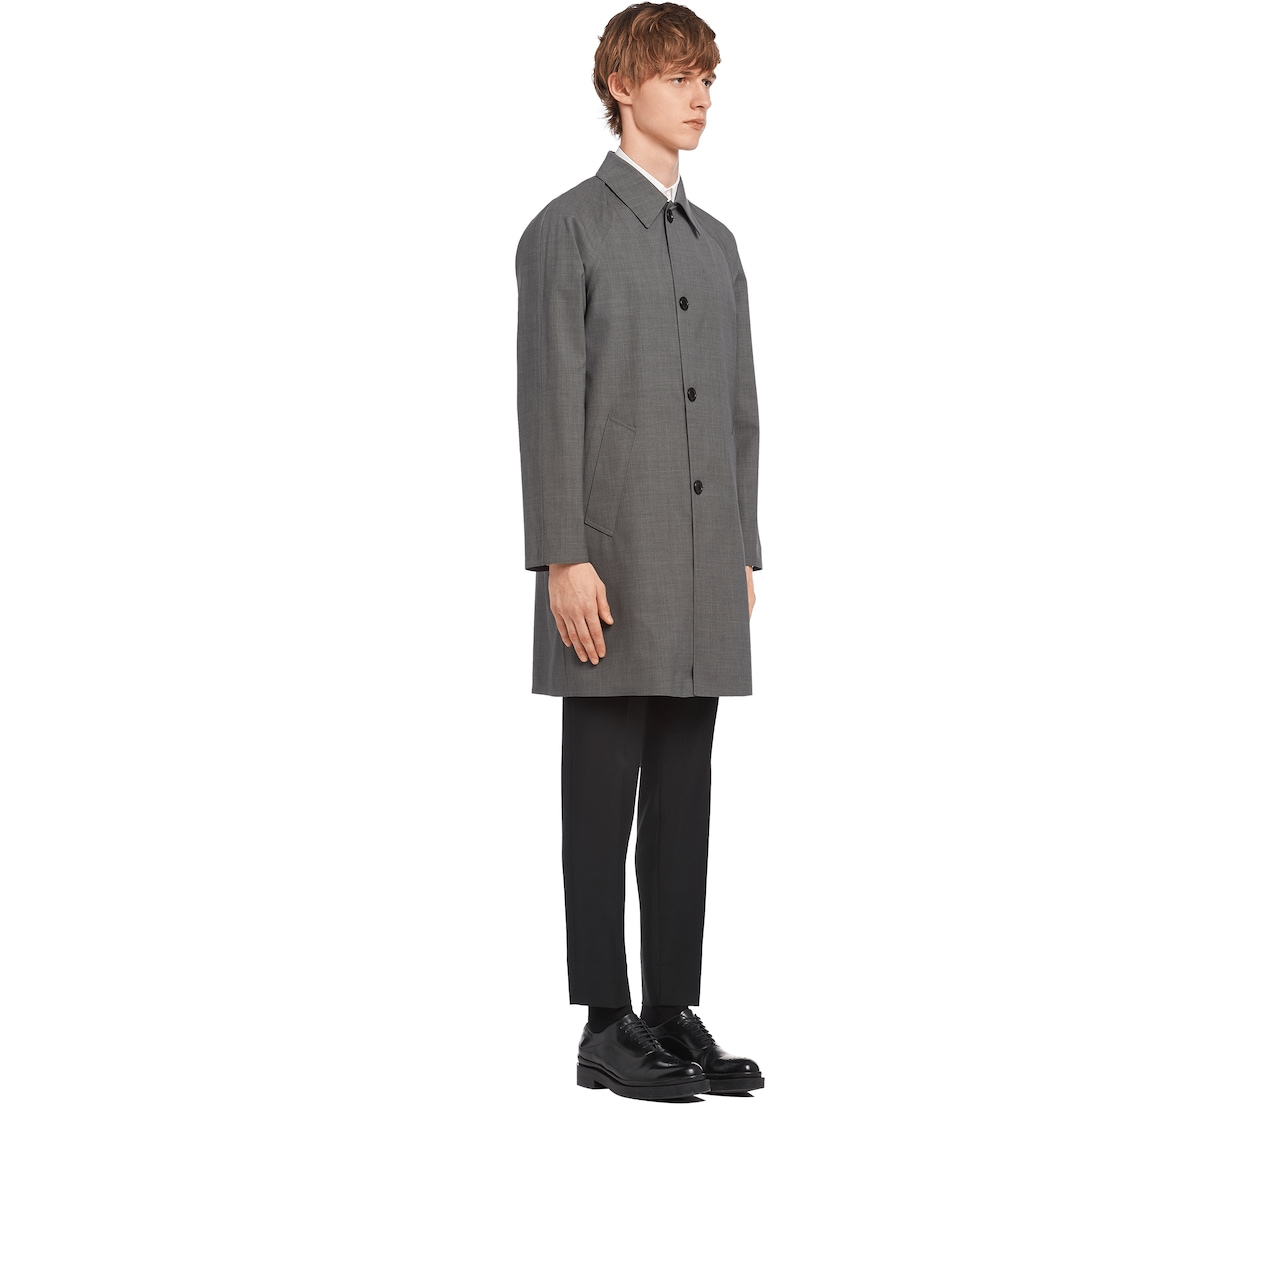 Wool and cotton raincoat